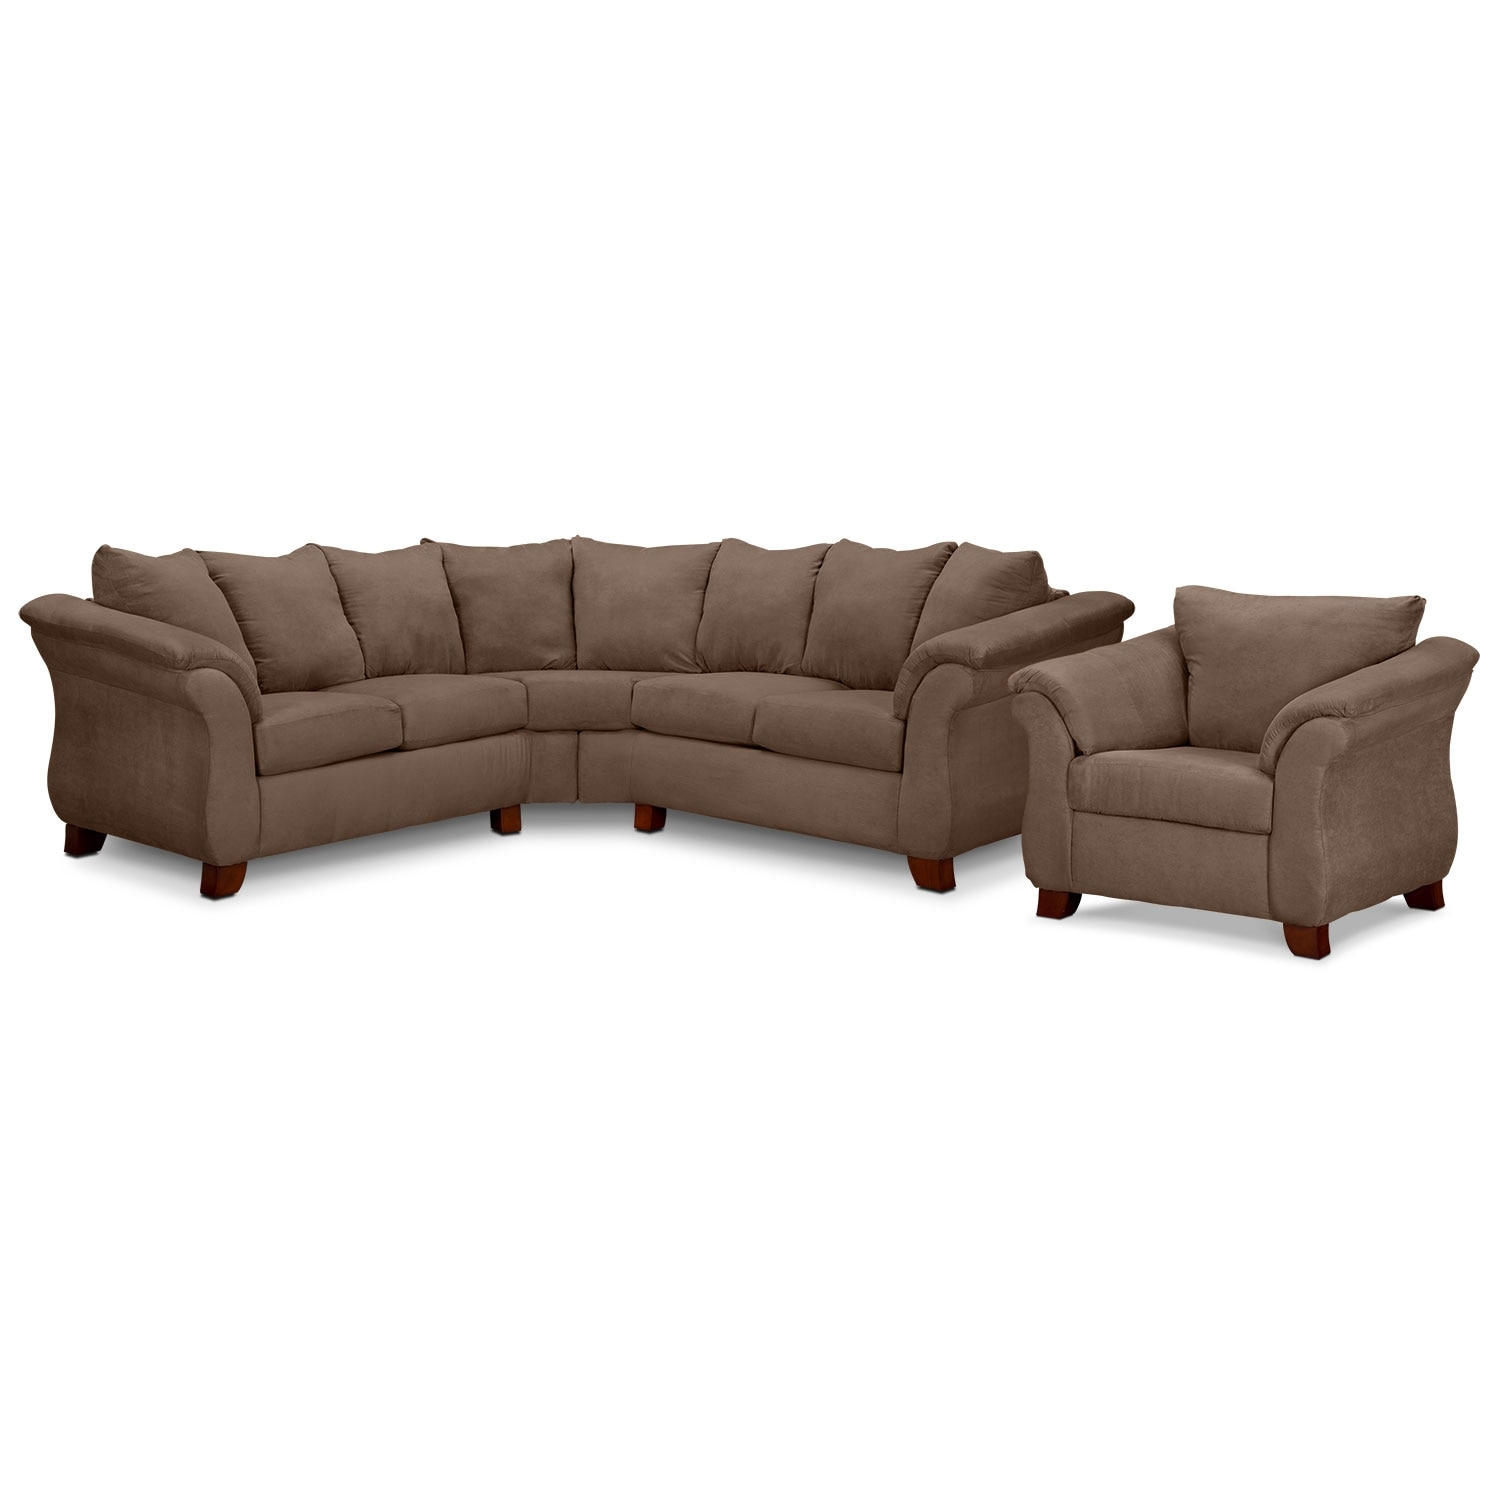 Adrian 2-Piece Sectional and Chair Set - Taupe